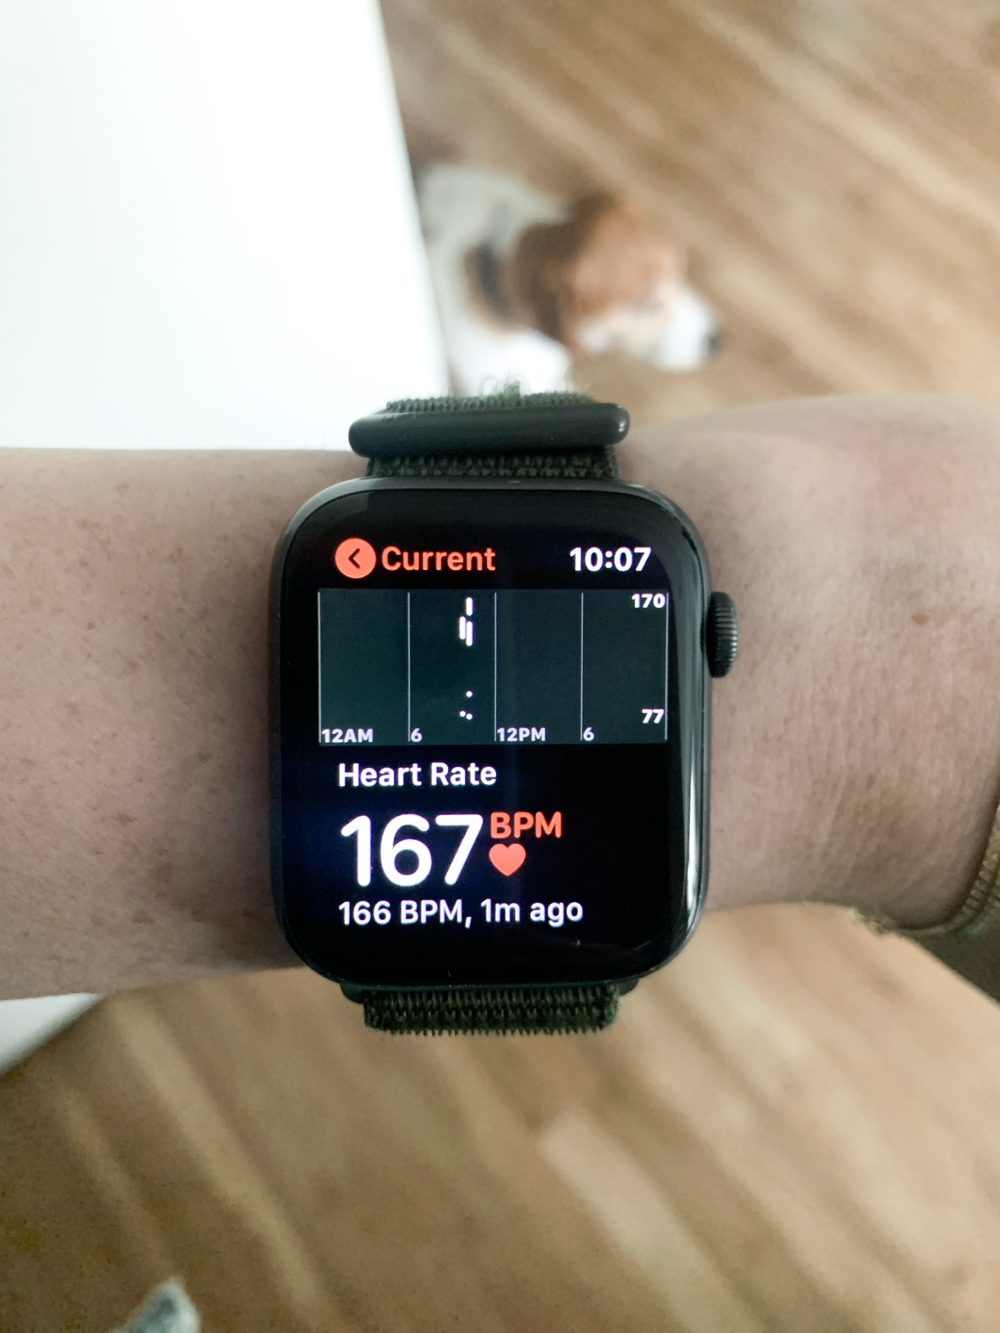 pots - high heart rate due to pots